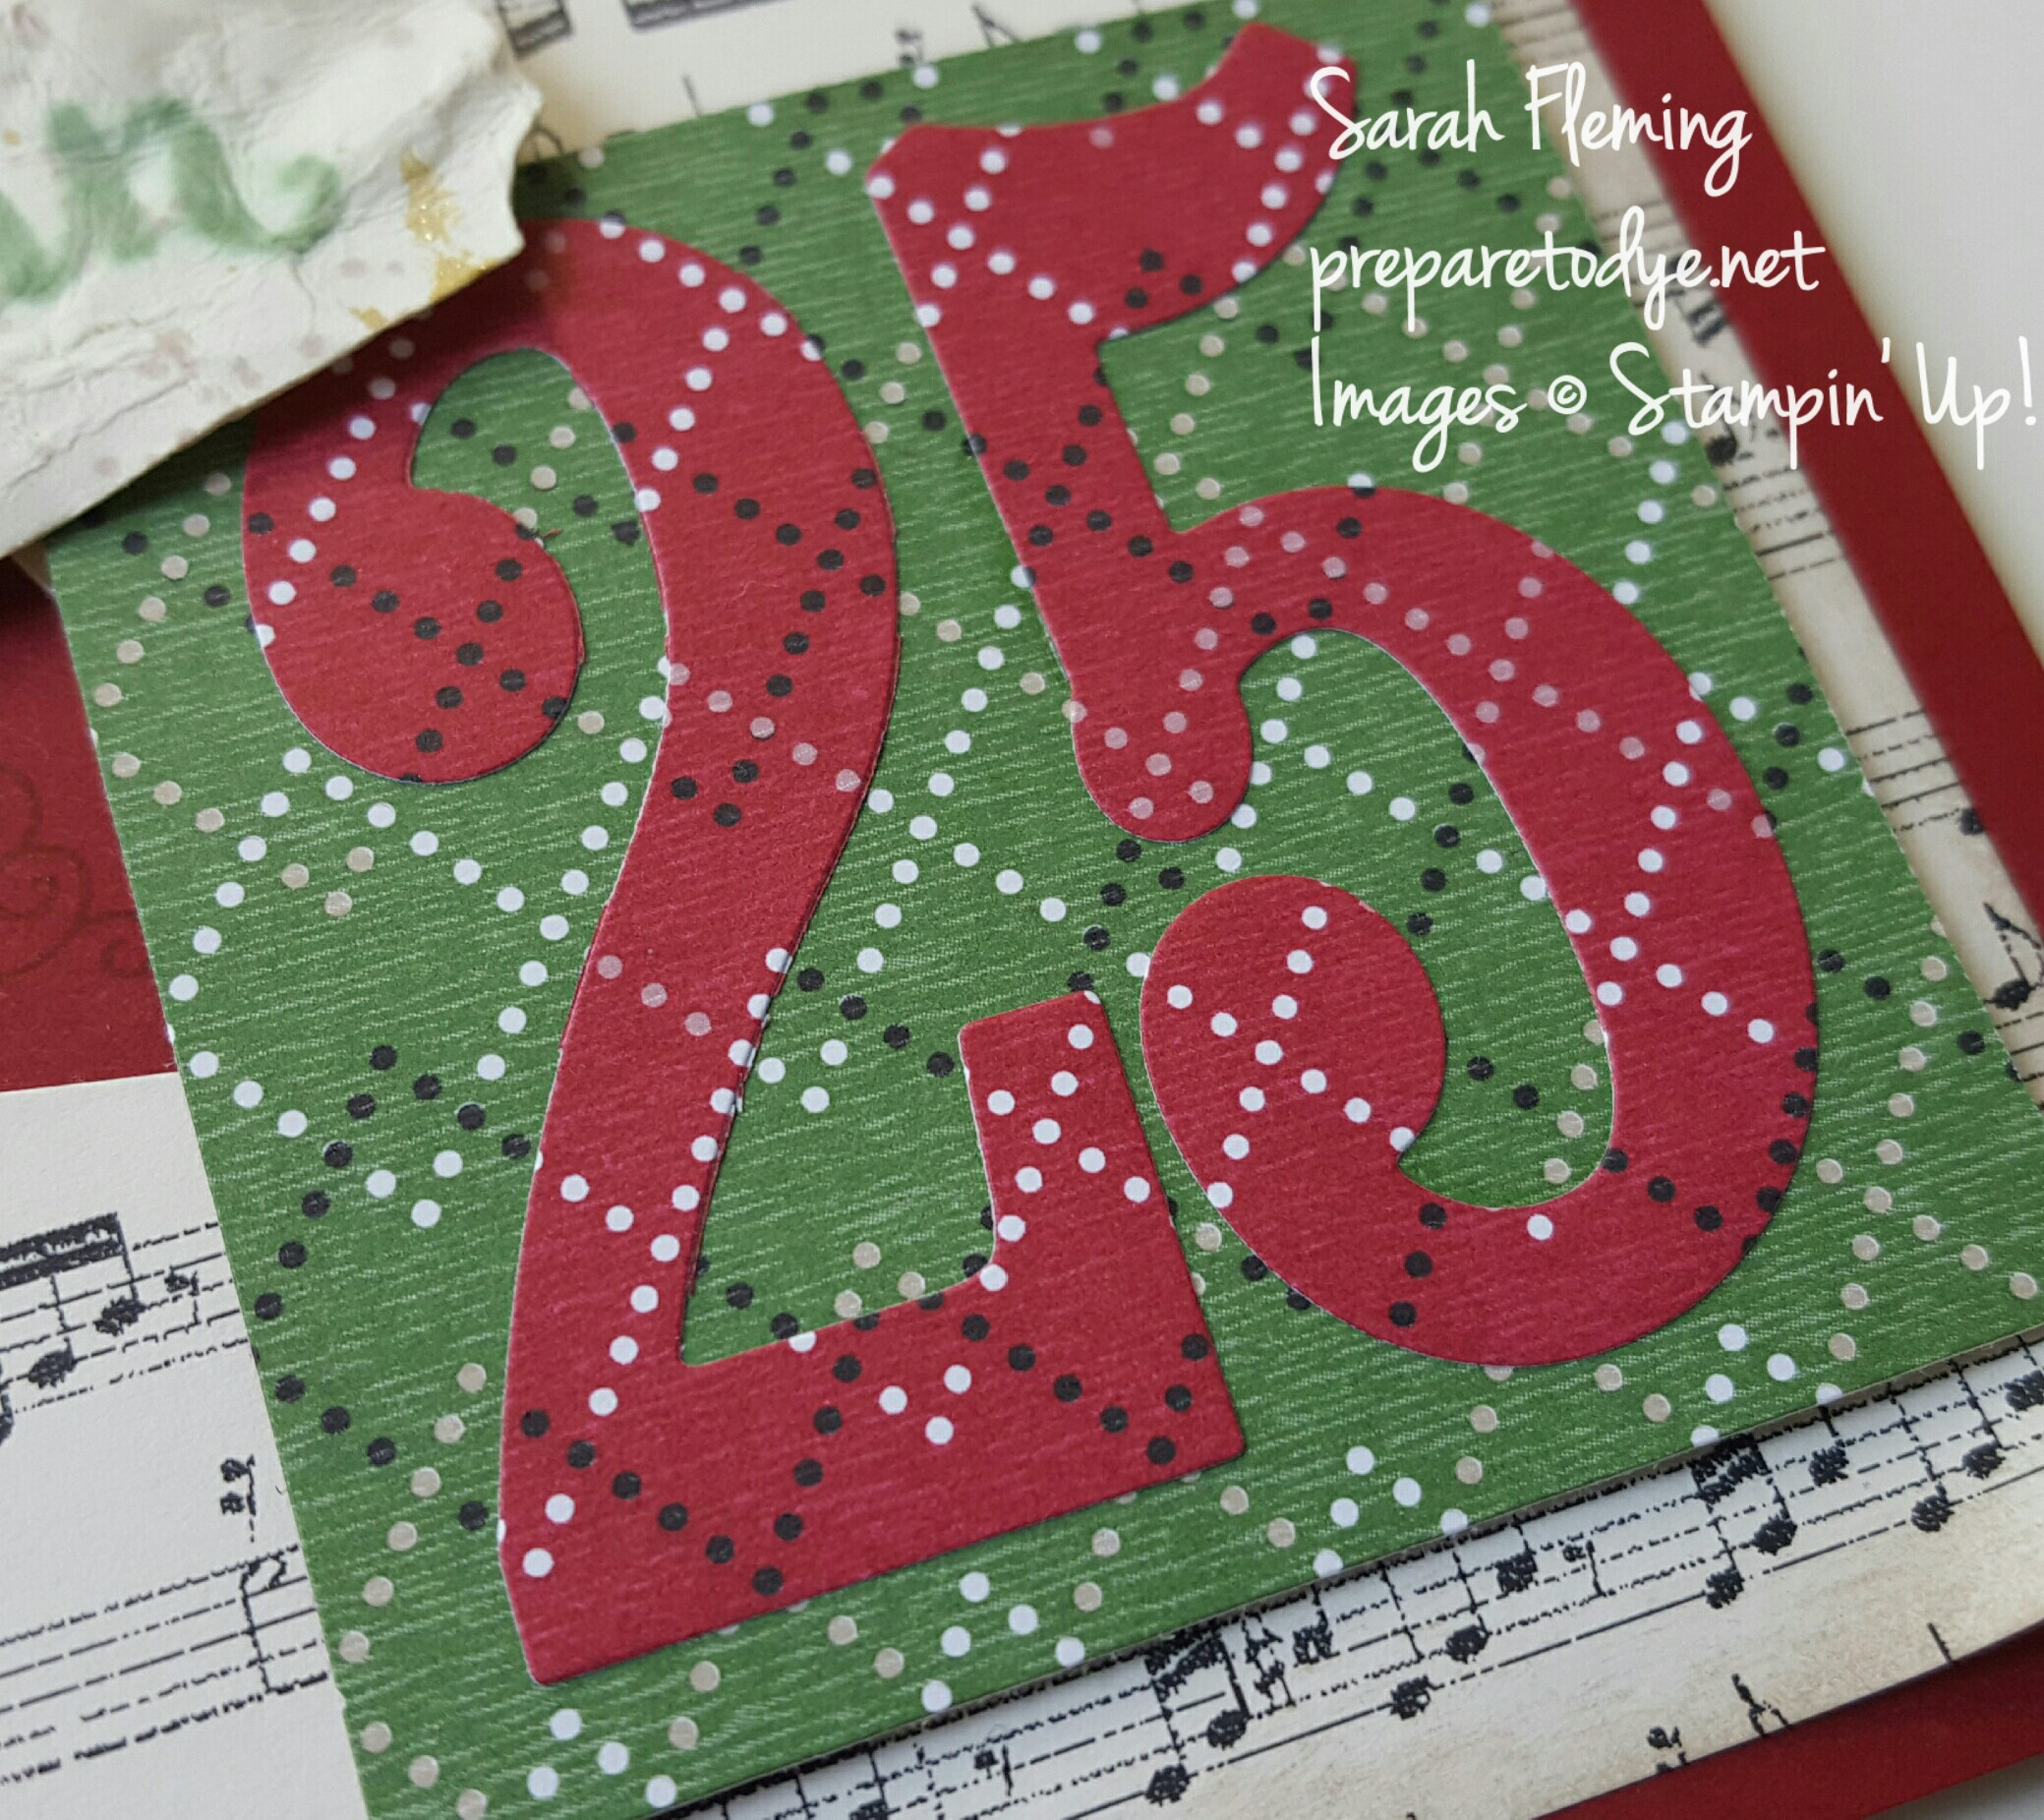 Stampin' Up! Large Numbers Framelits and Warmth & Cheer paper - Sarah Fleming - Prepare to Dye Papercrafts